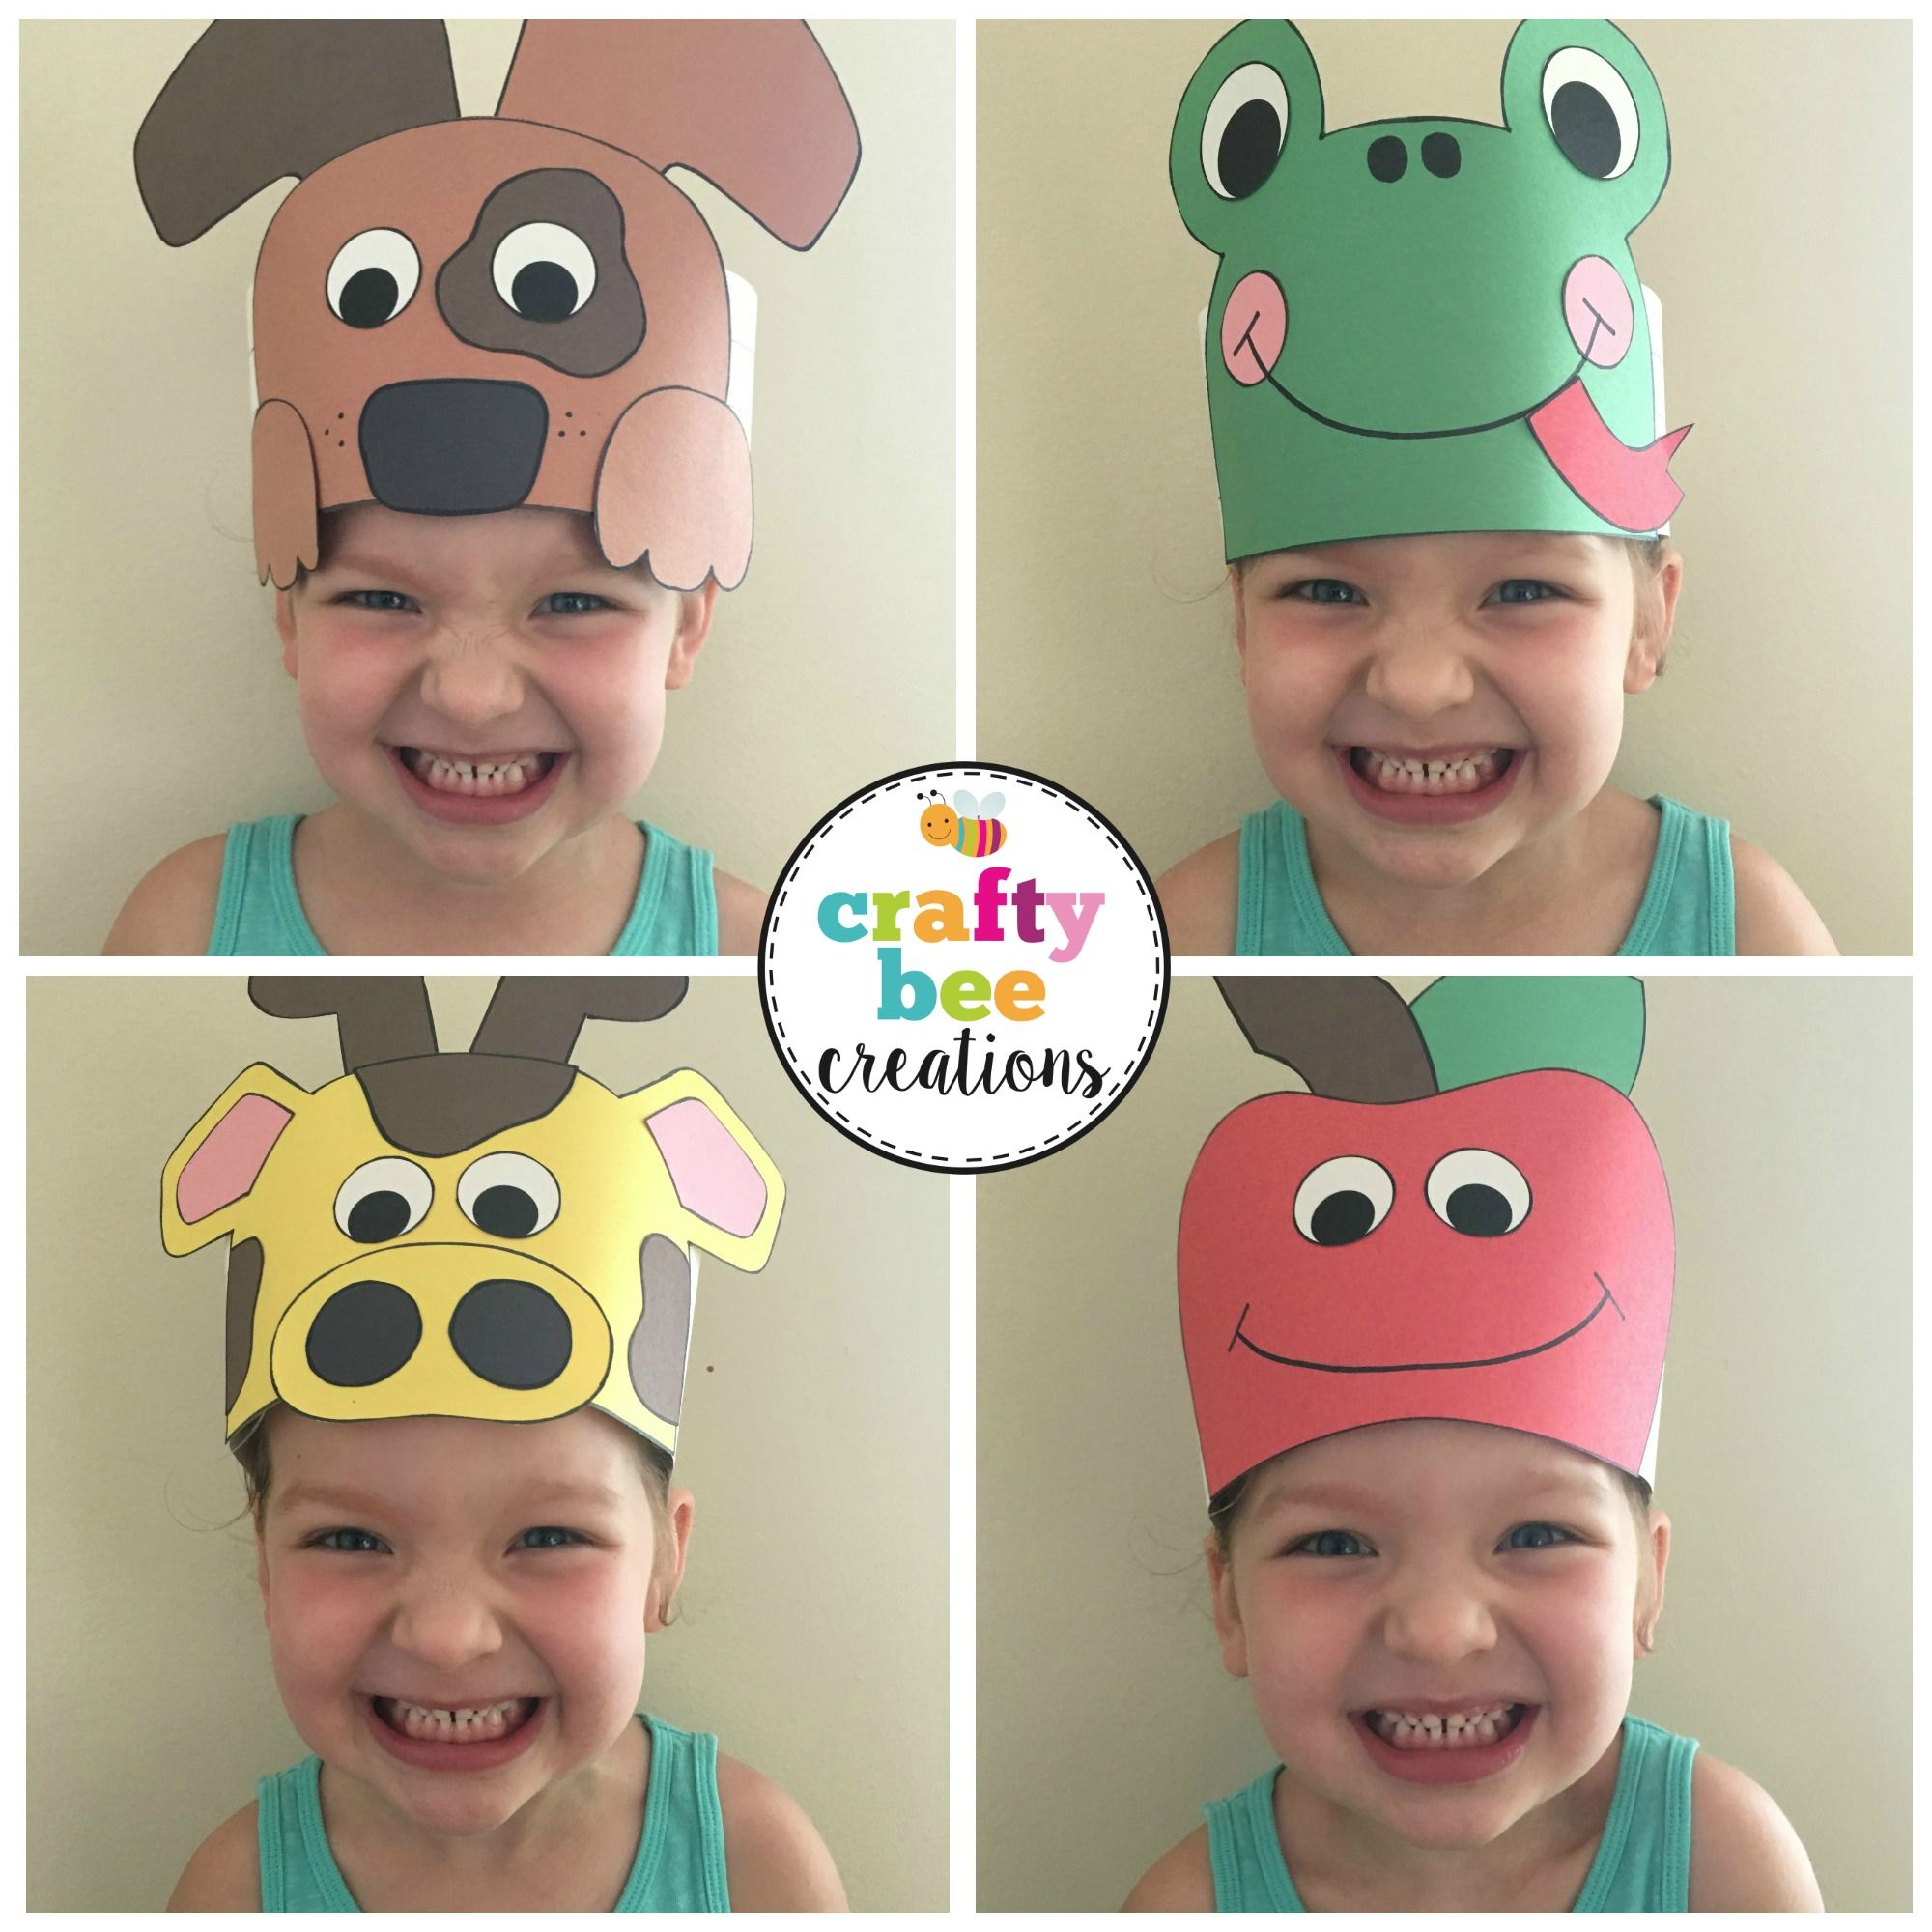 a281671e7ed Cutest A to Z Animal Hats ever! Kids will not only love wearing them